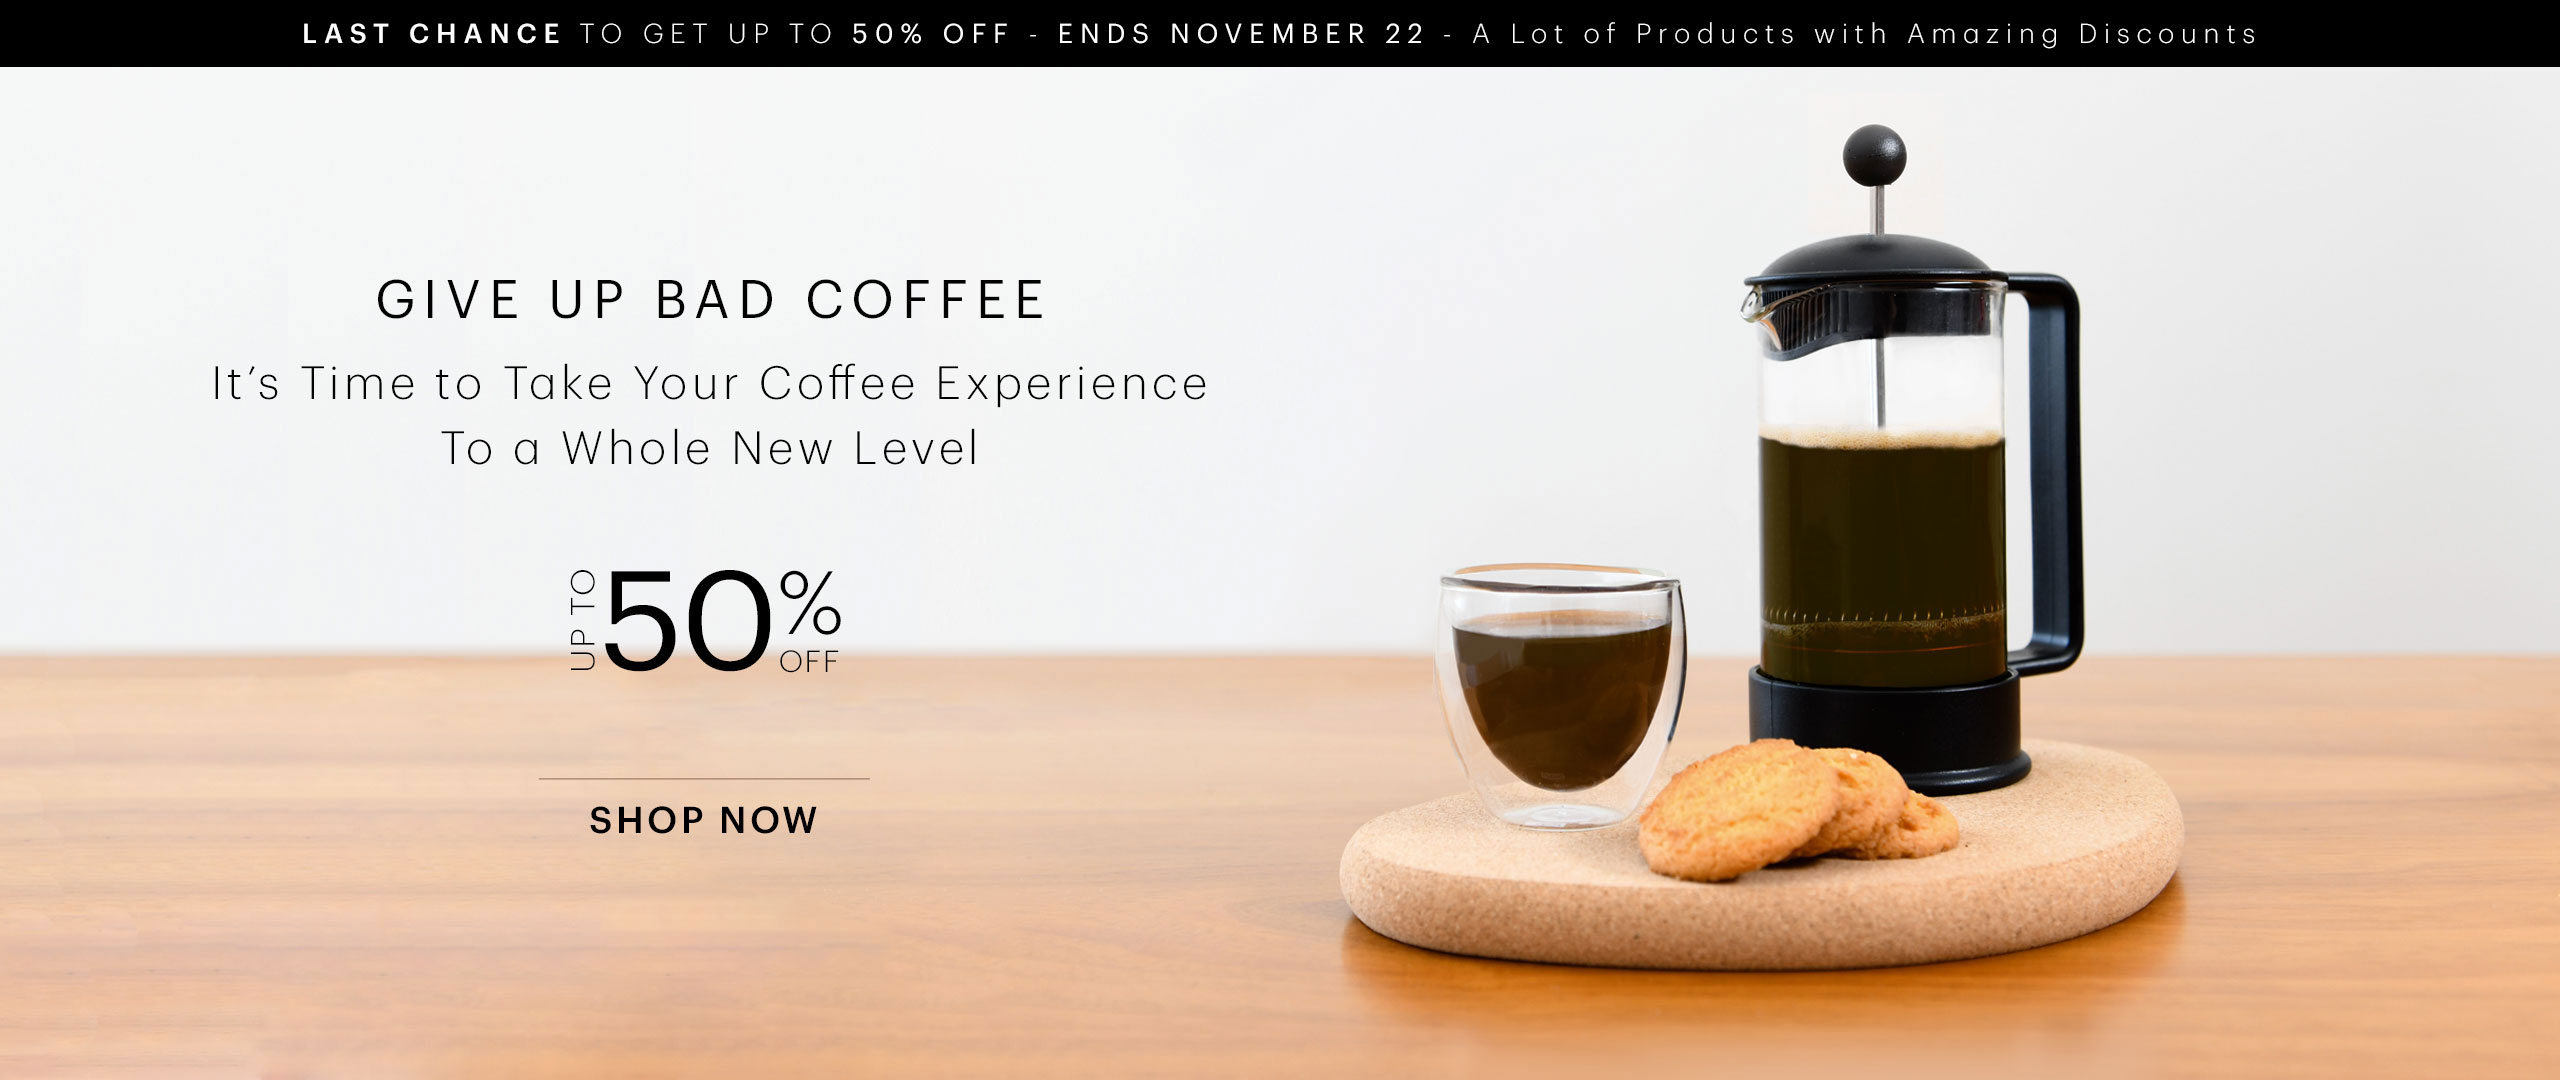 BUS [CA] - Give Up Bad Coffee Last Days